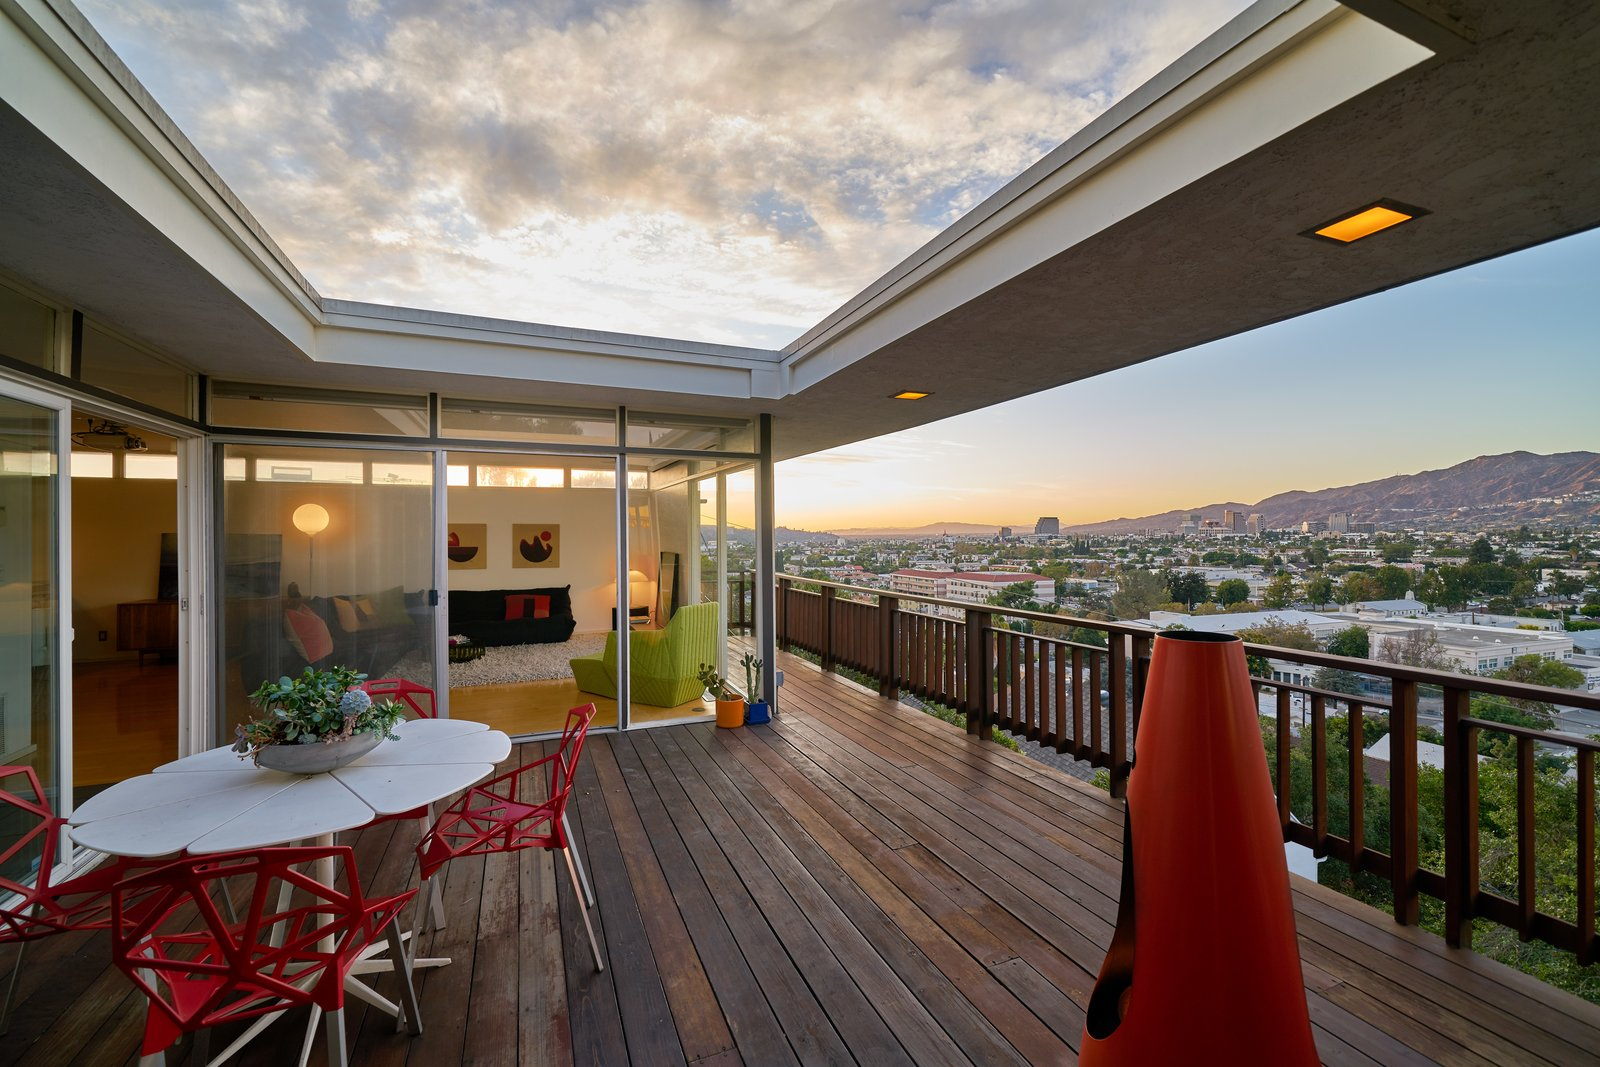 Outdoor, Large Patio, Porch, Deck, Wood Patio, Porch, Deck, and Wood Fences, Wall The outdoor terrance extends along the living room, allowing panoramic views of the city.  Photo 9 of 14 in A Midcentury-Modern Home in L.A. Designed by Richard Banta Is For Sale For $899K